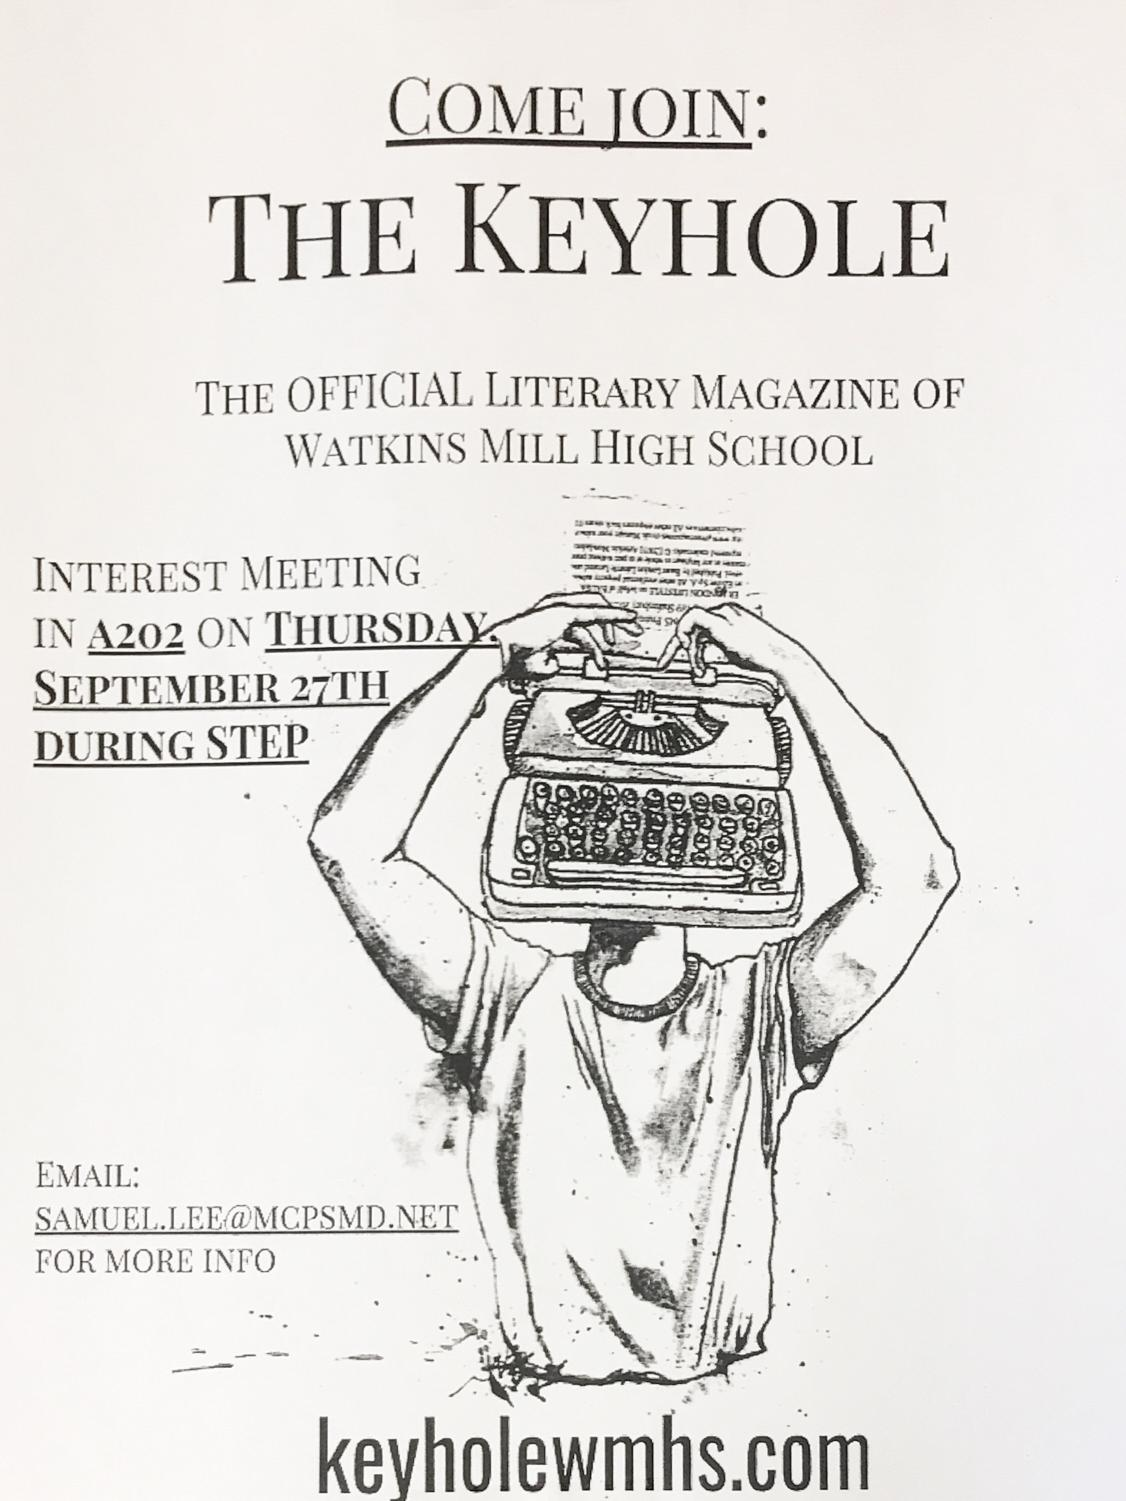 They Keyhole's official poster